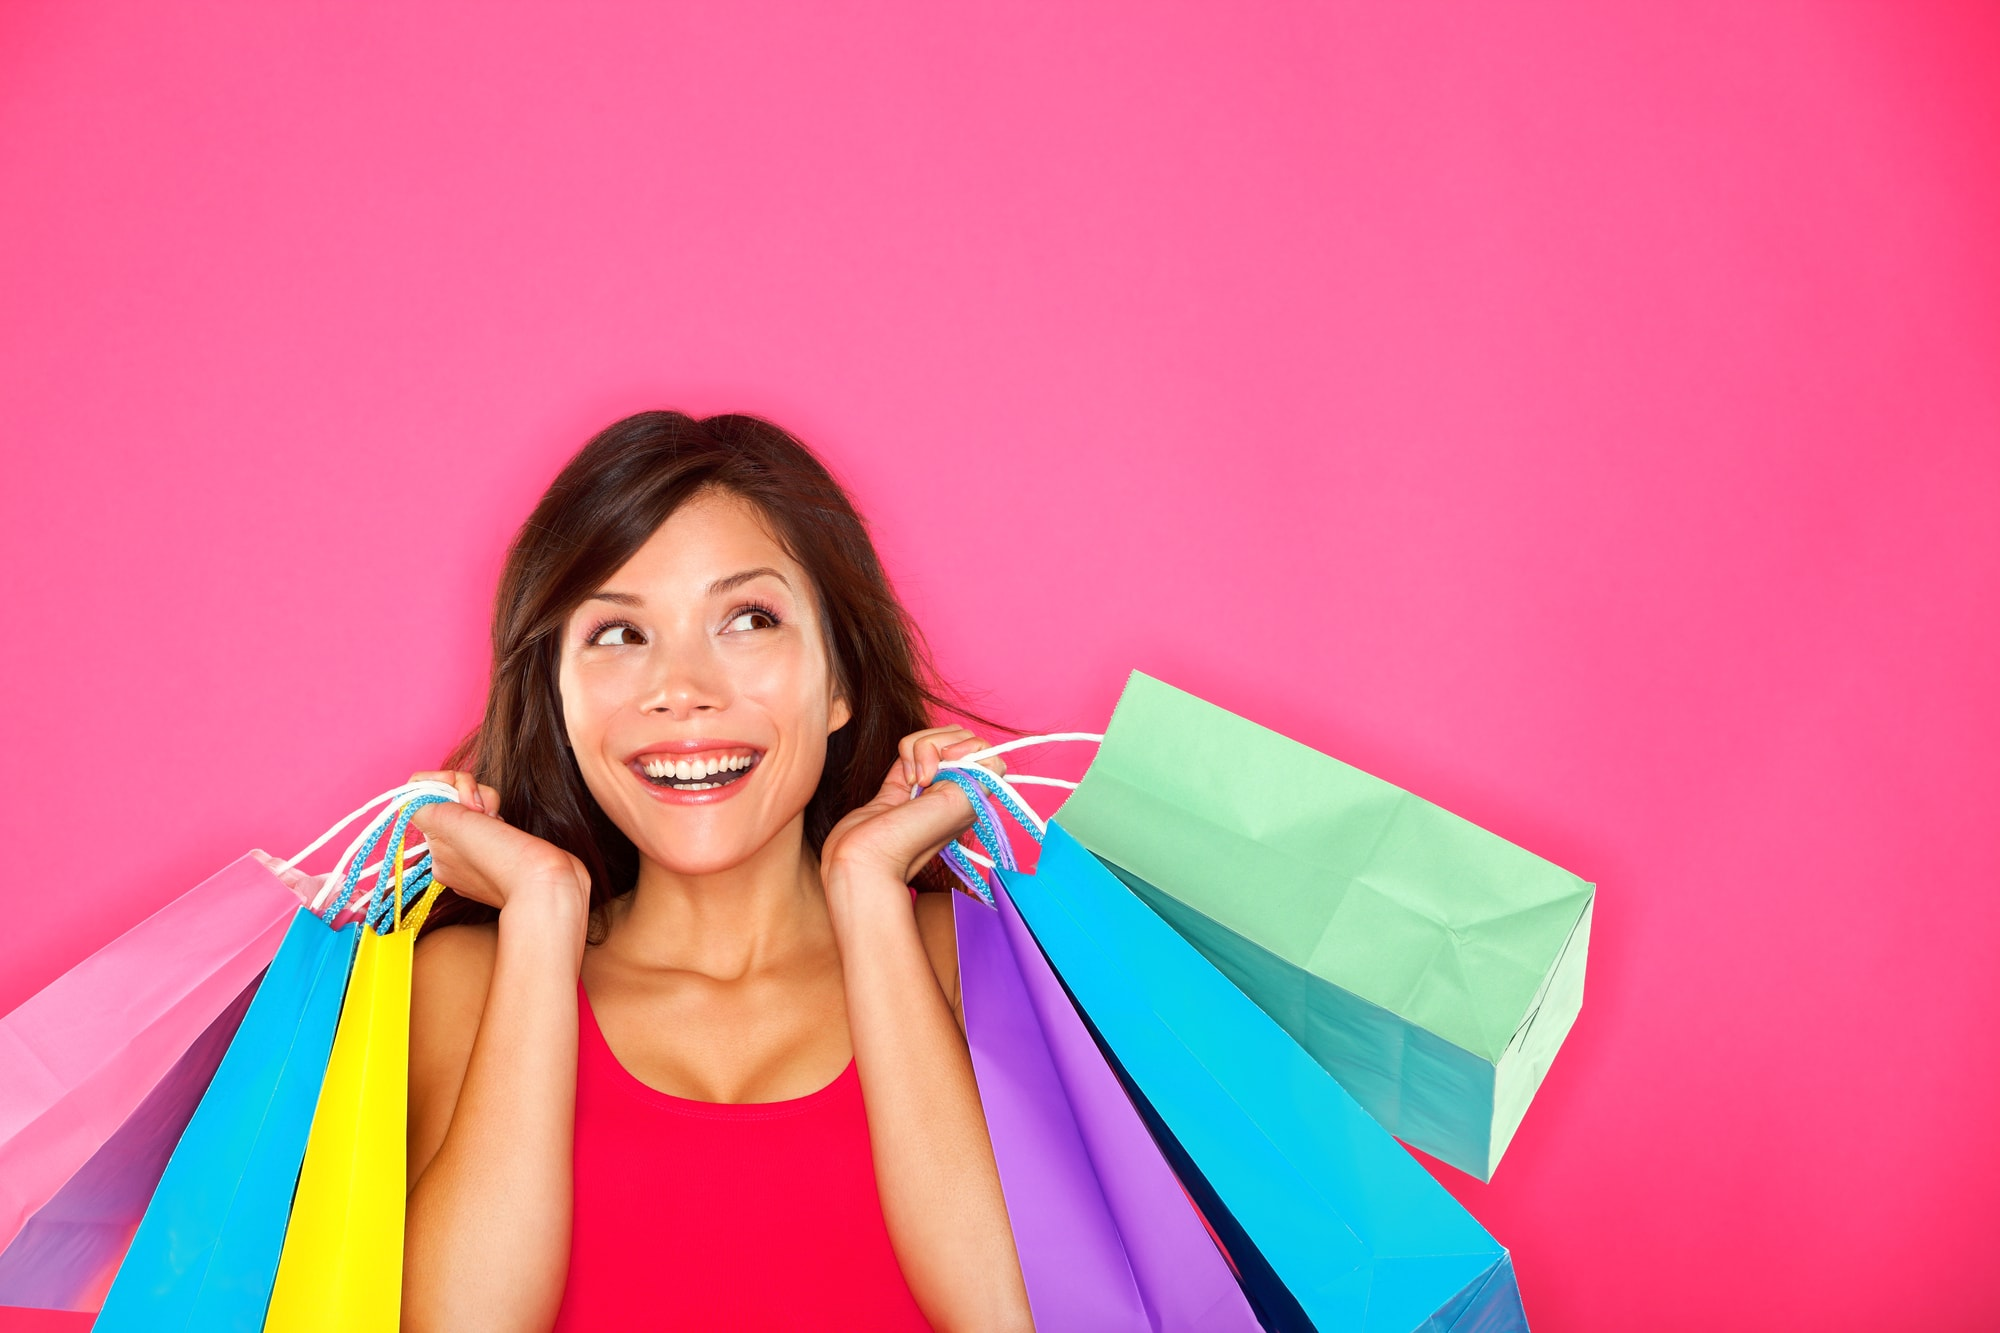 woman with shopping bags against pink background